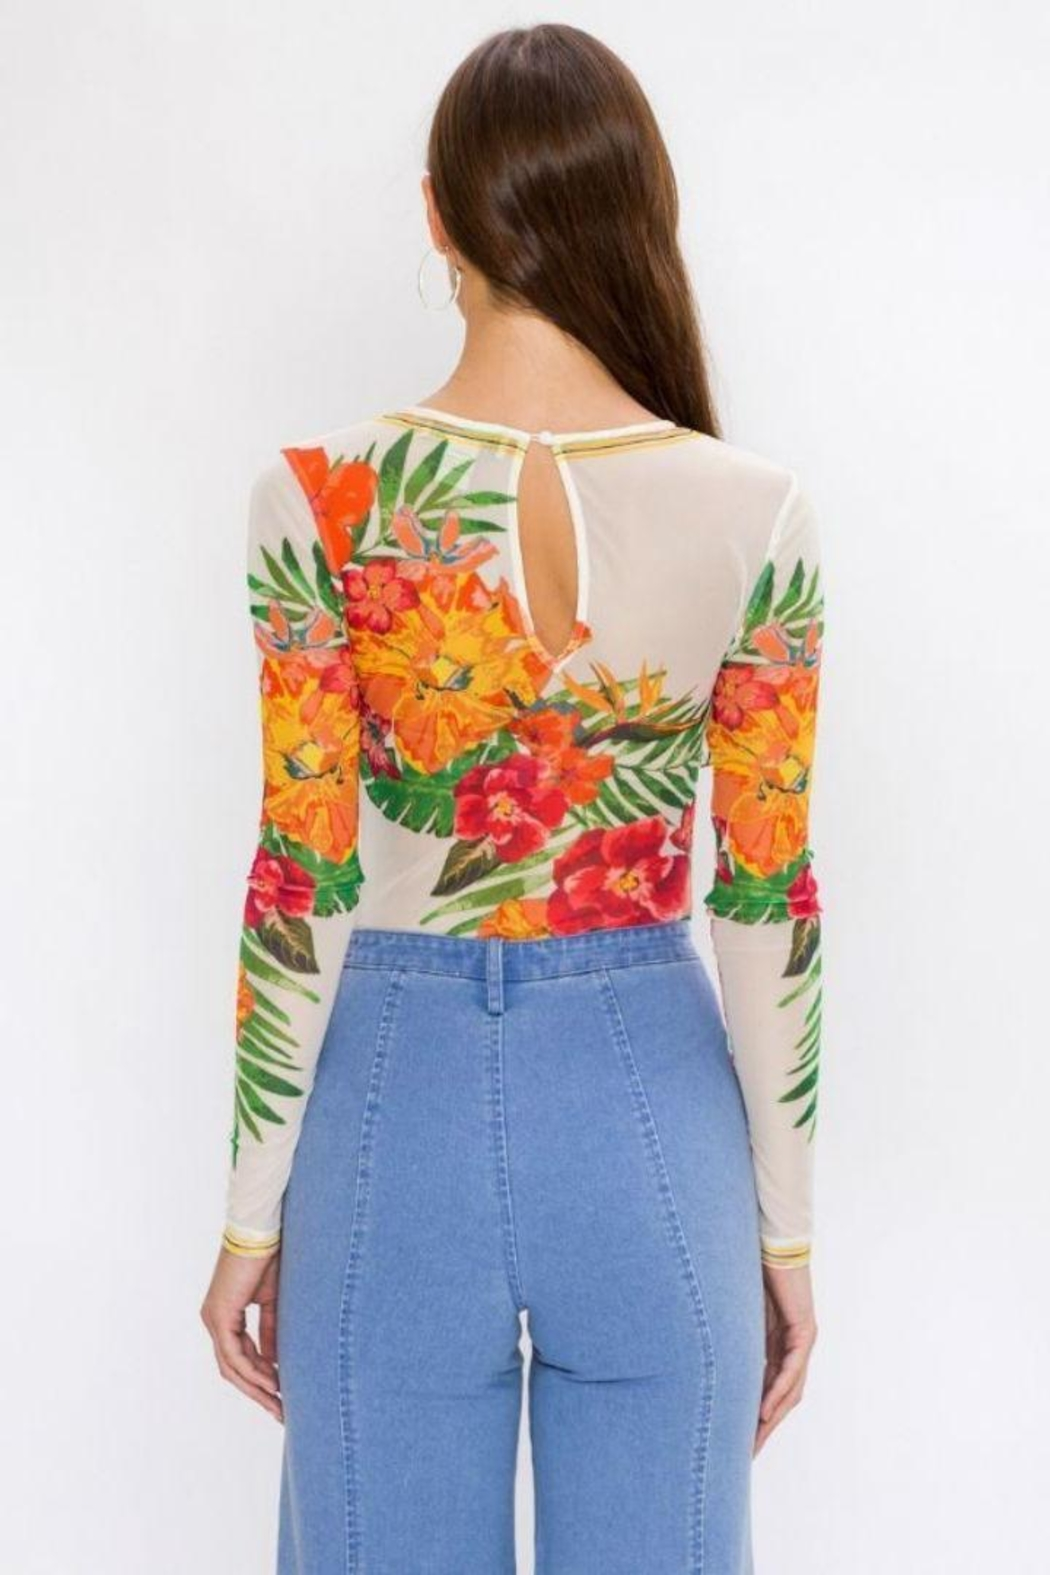 91c5f468d5 Flying Tomato Floral Bodysuit from Brooklyn by Glam Expressway ...